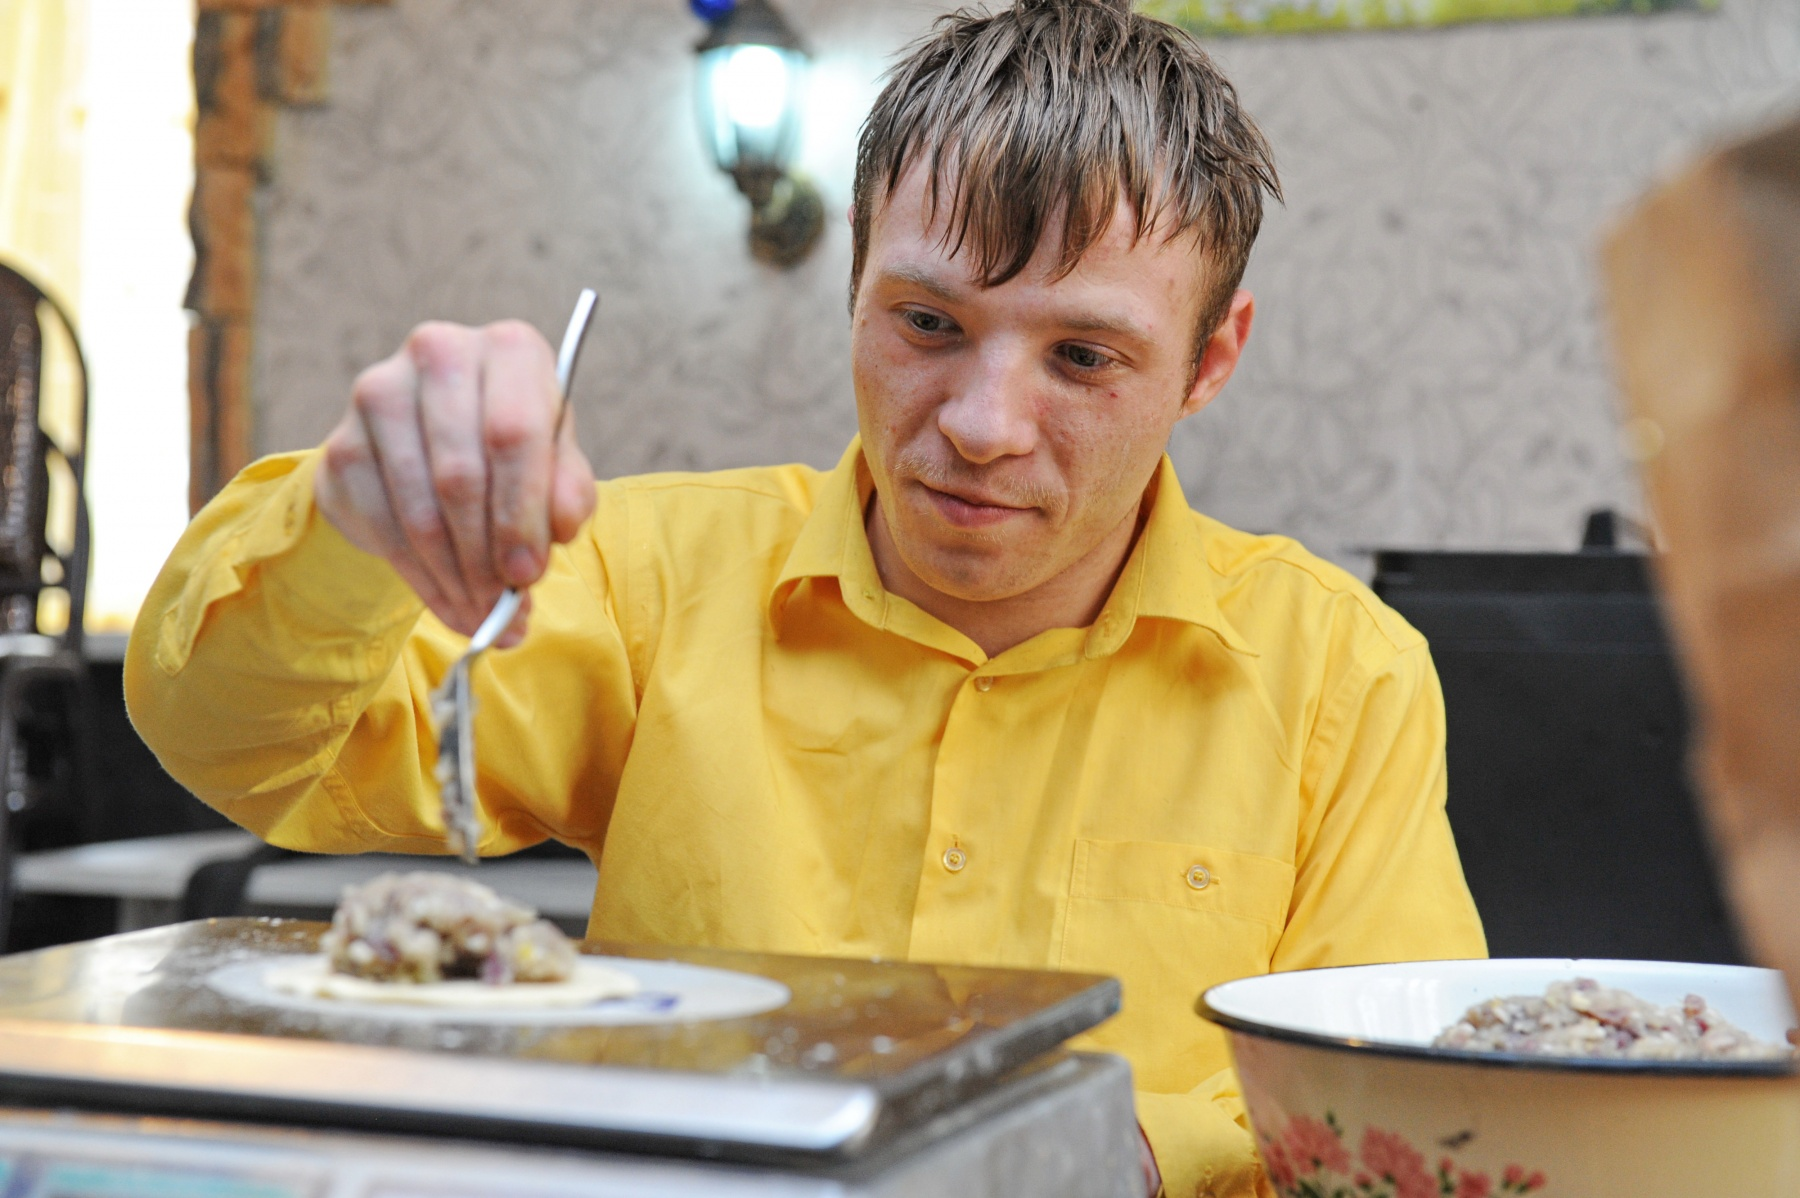 Café staffed entirely by people with disabilities